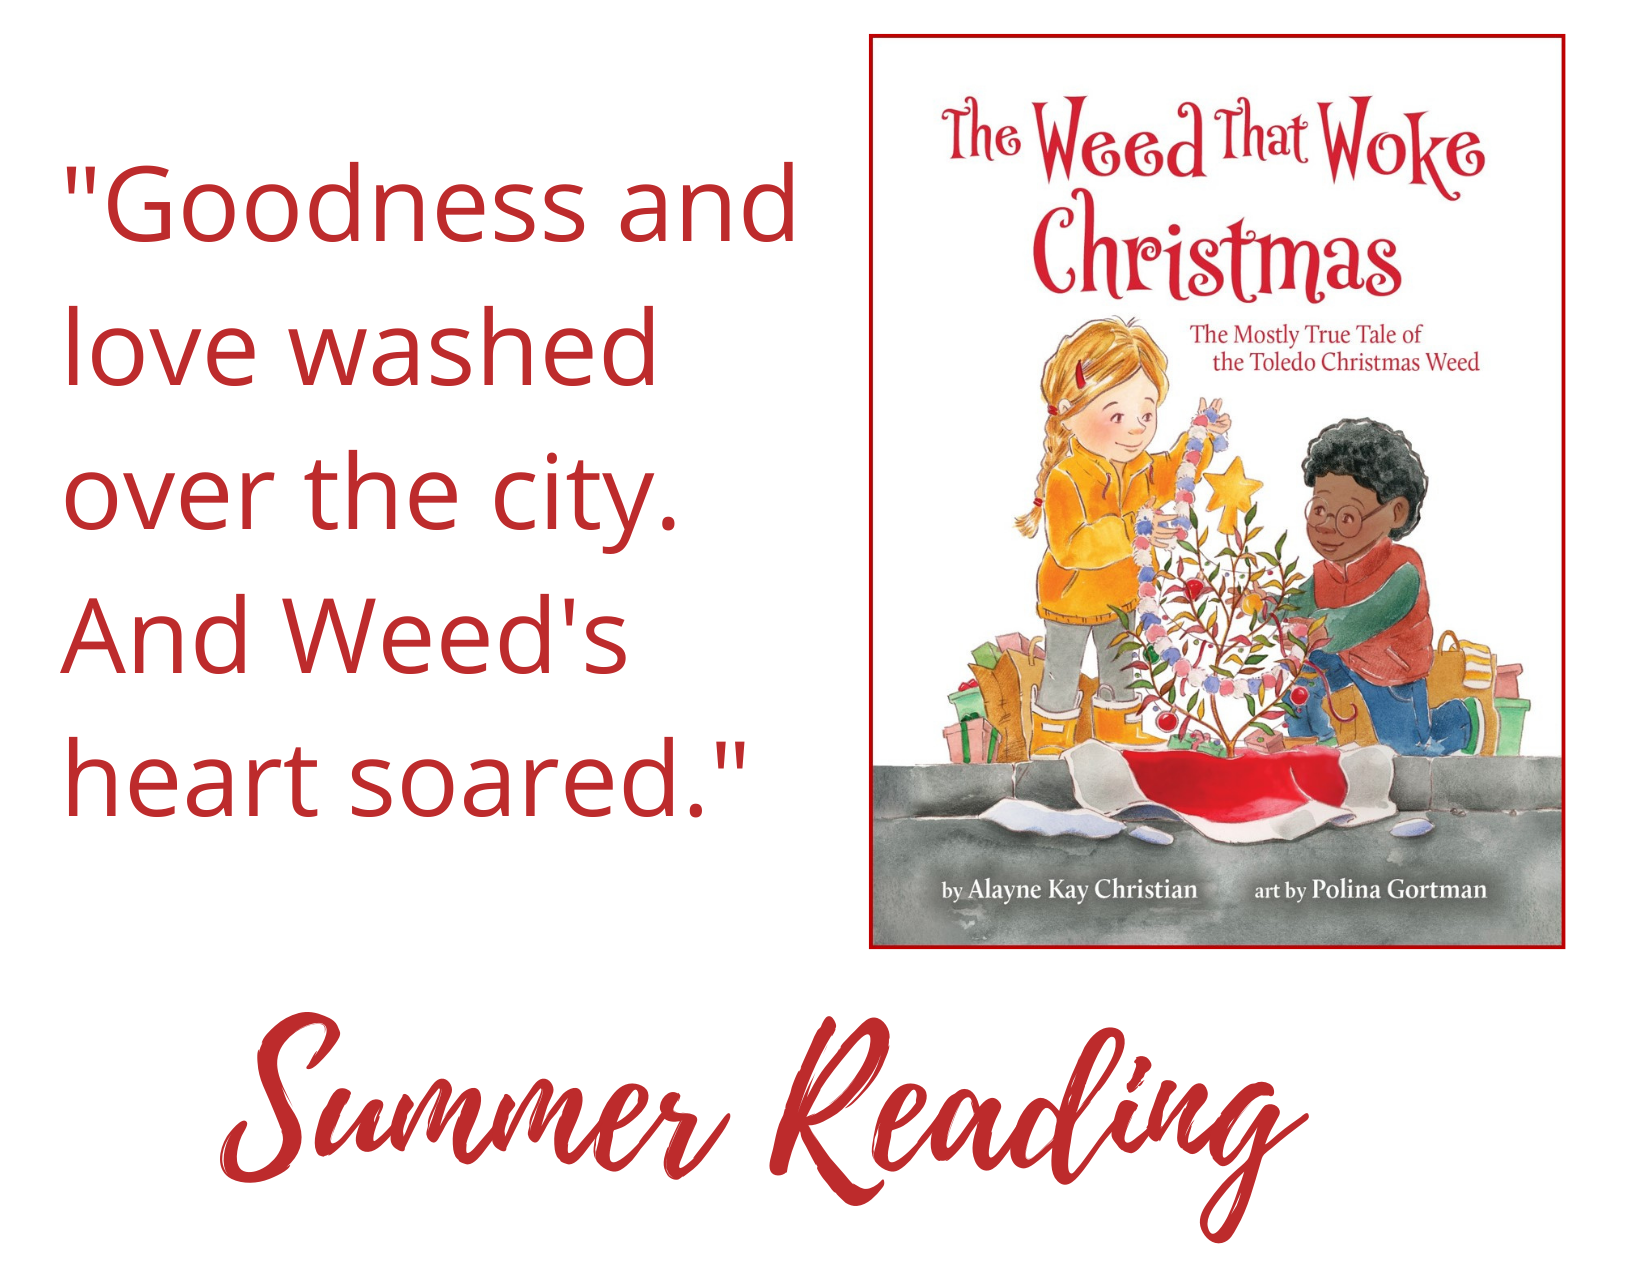 Goodness and love washed over the city. Summer Reading